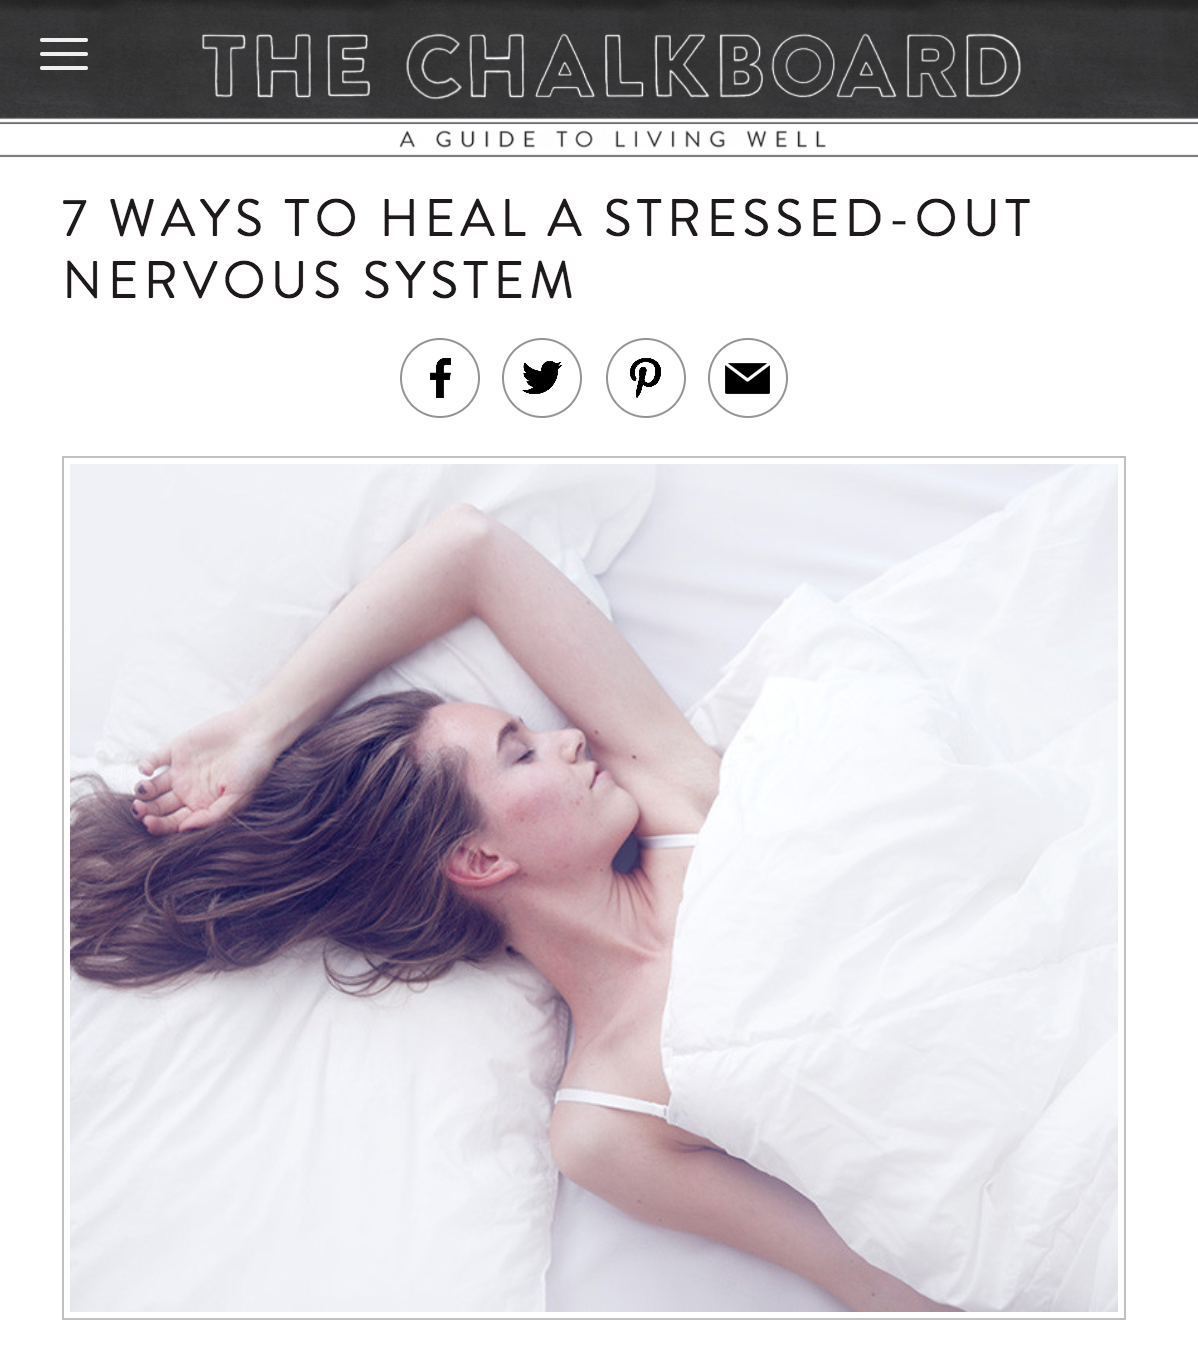 7 WAYS TO HEAL A STRESSED-OUT NERVOUS SYSTEM